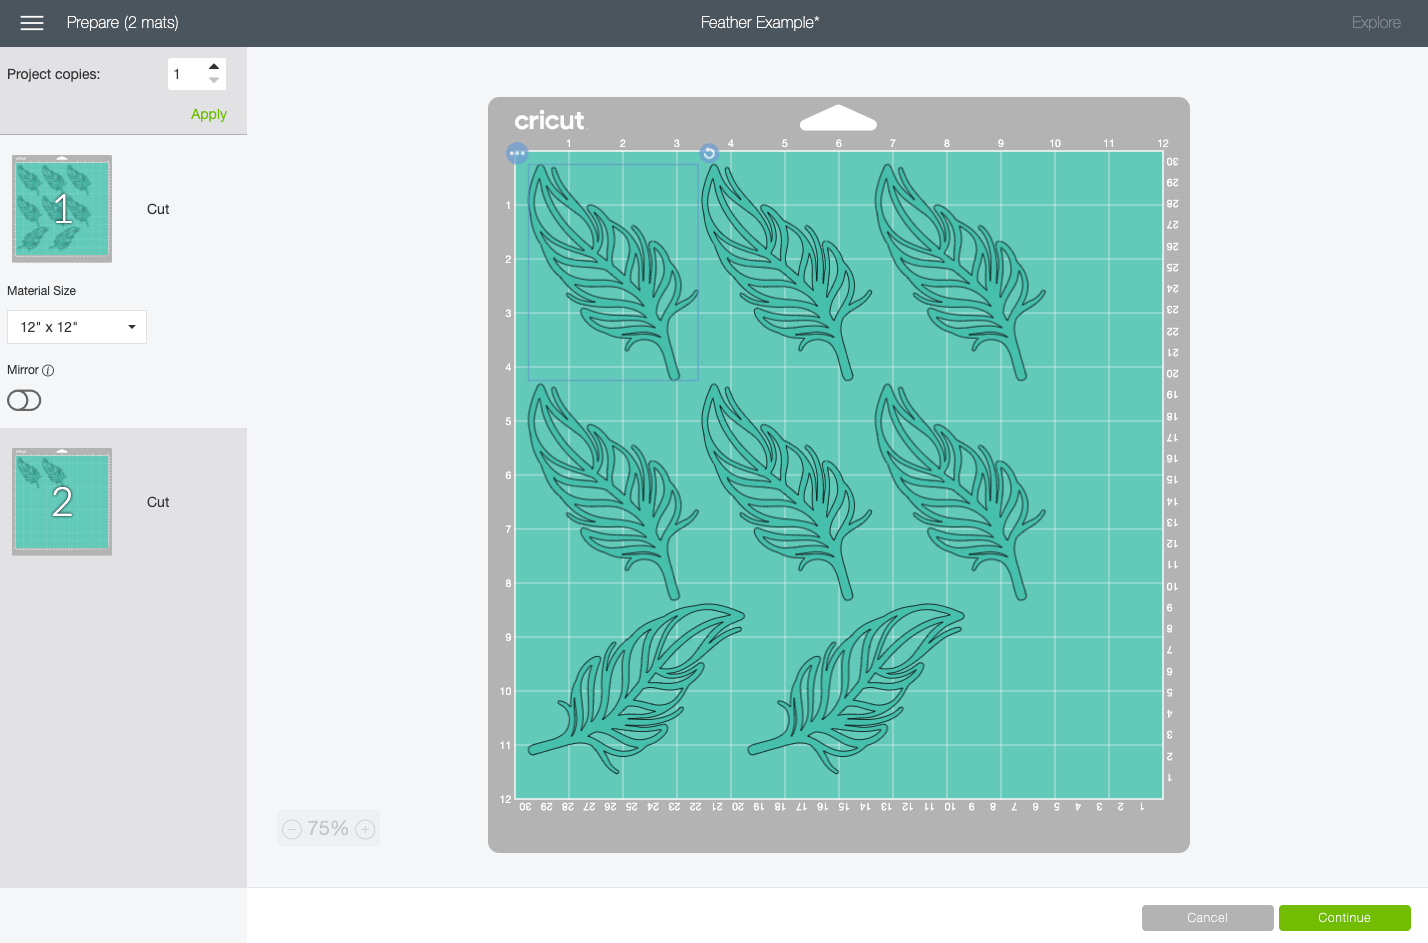 Cricut Design Space: mat showing feathers spaced how DS spaces them.